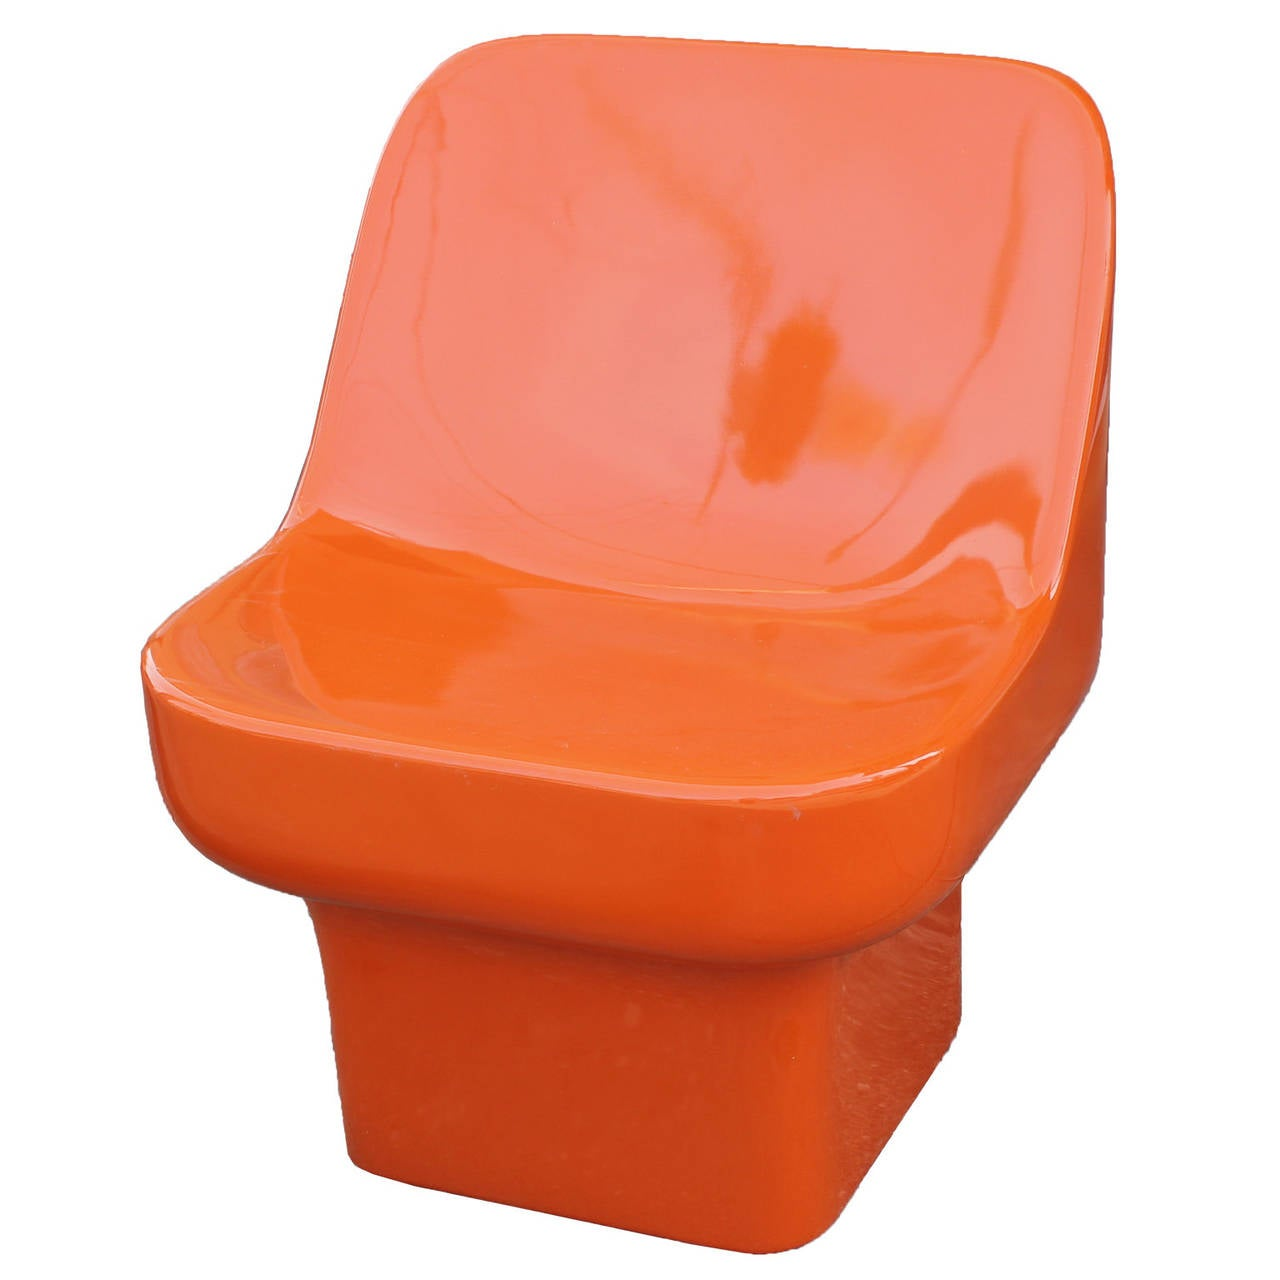 Douglas Deeds Glossy Orange Lacquered Fiberglass Chairs at